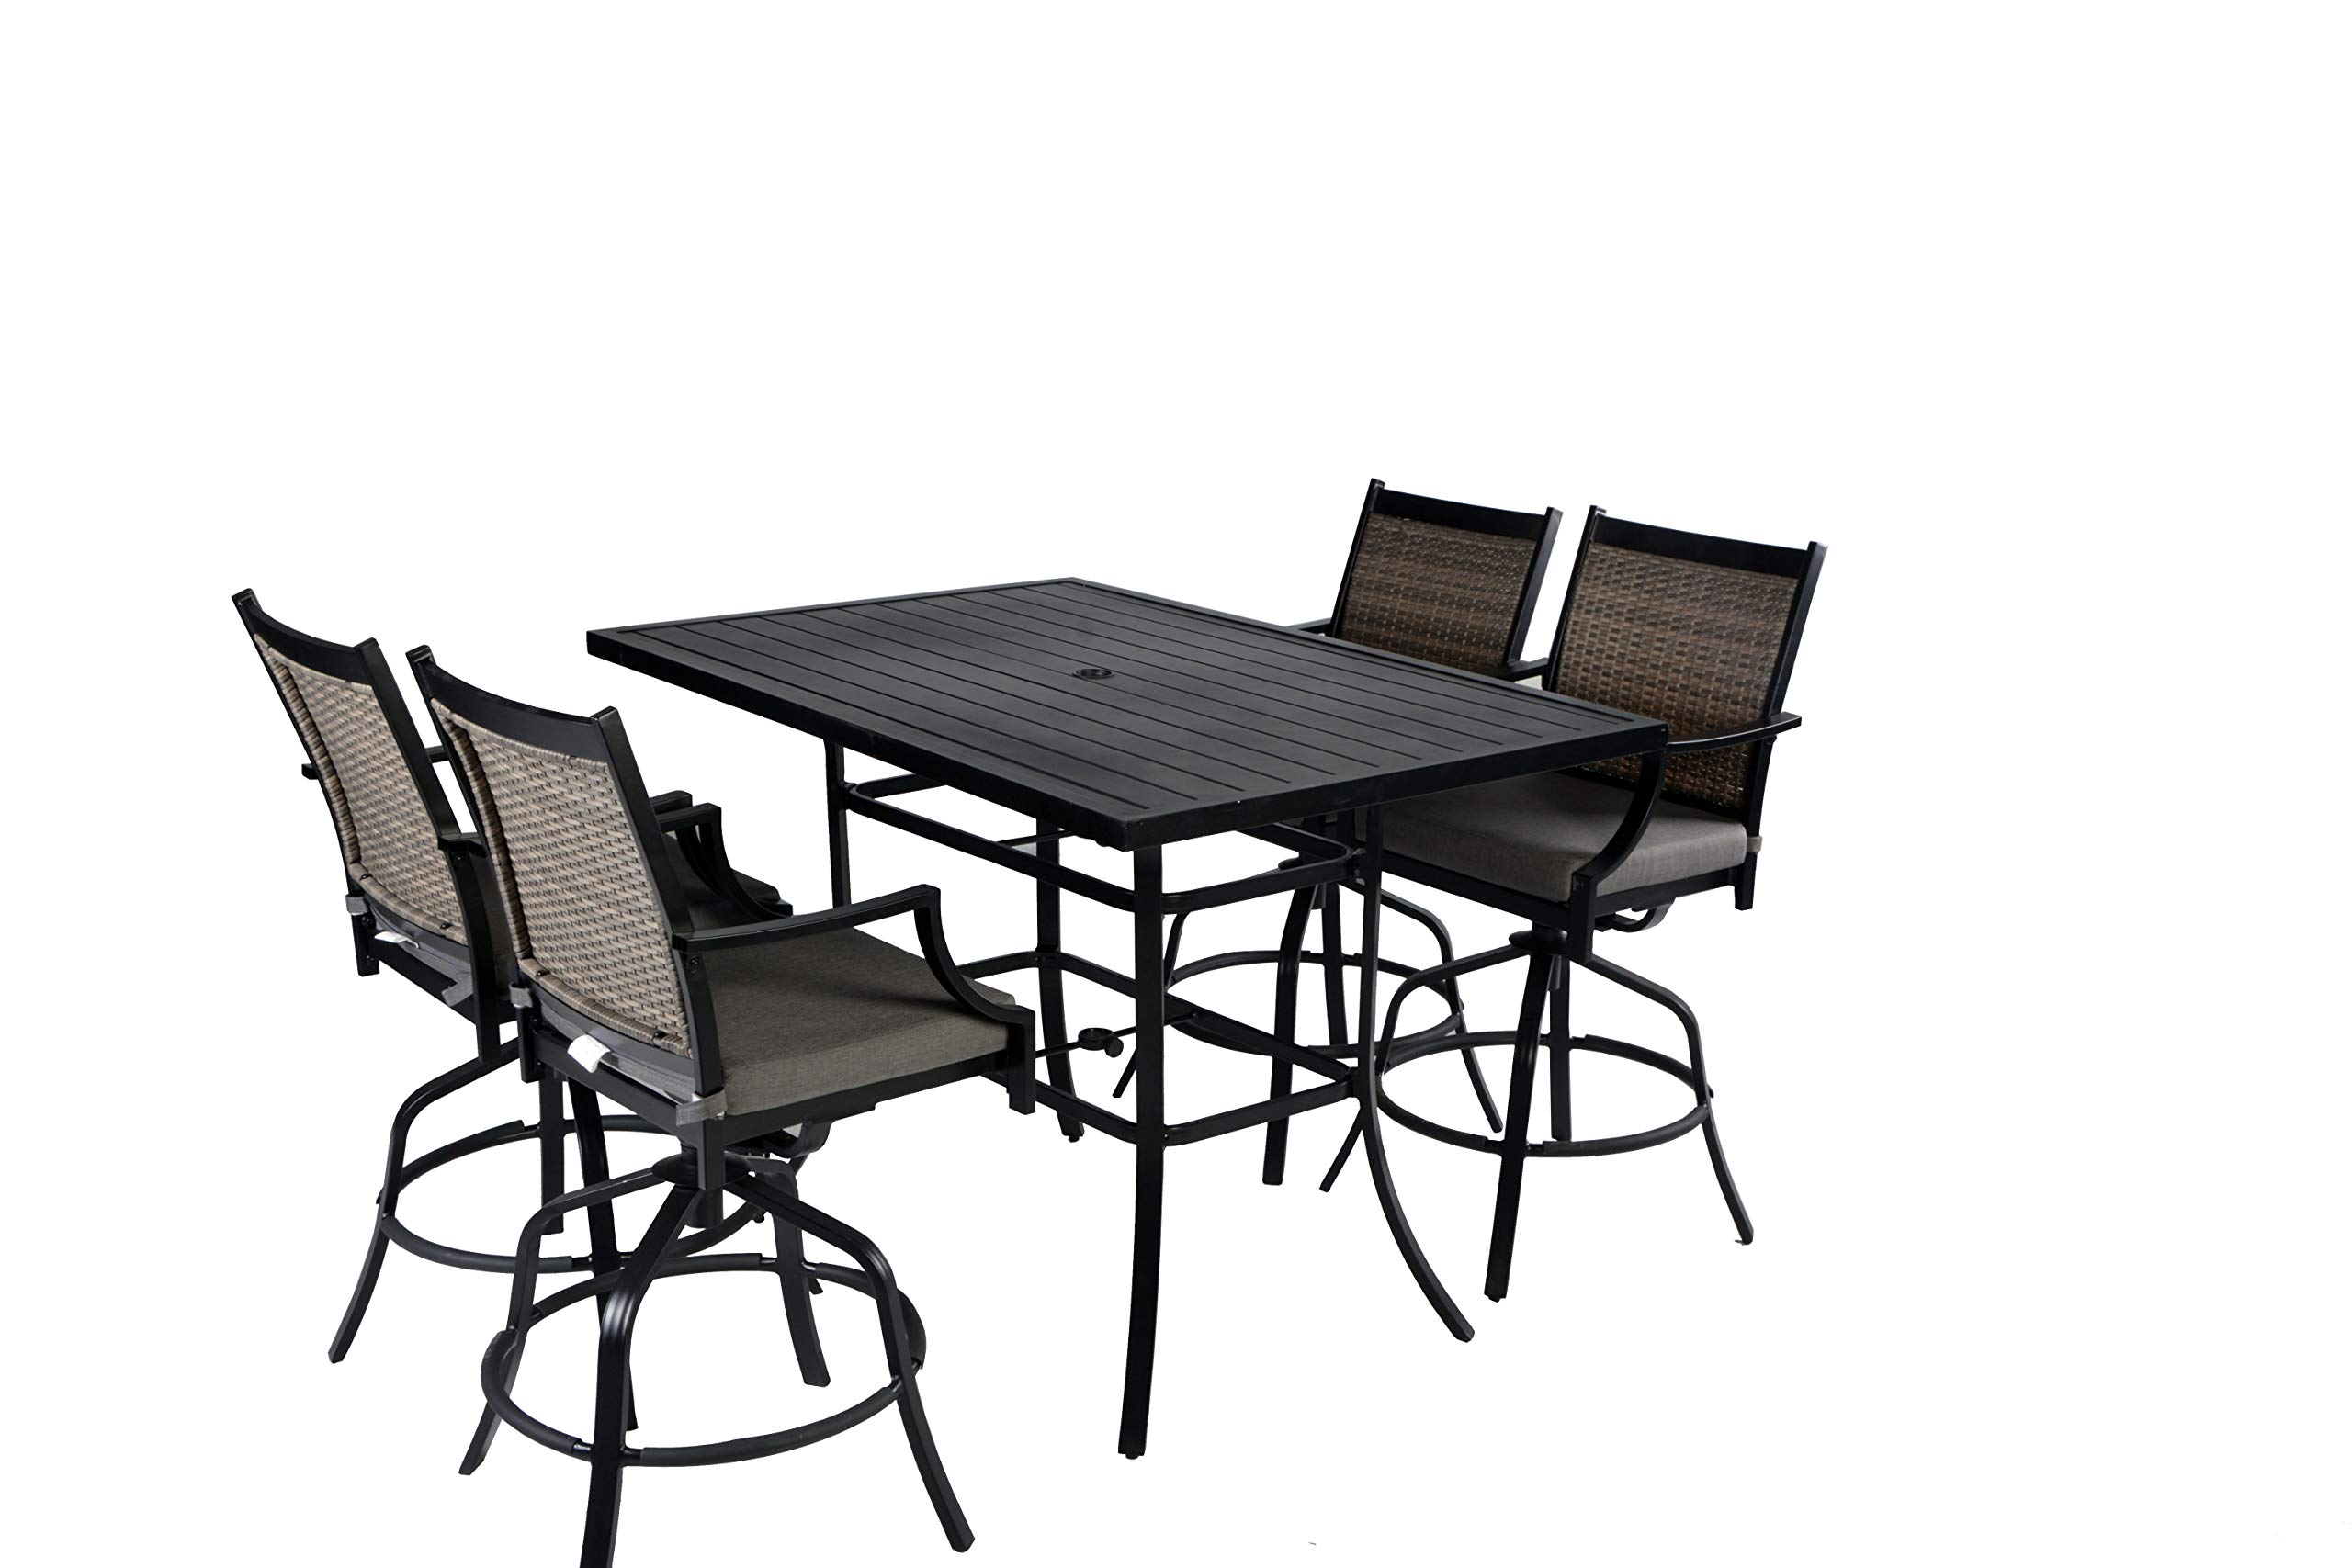 Pebble Lane Living All Weather Rust Proof Indoor/Outdoor 5pc Powder Coated Aluminum Patio Bar Dining Set, 1 Slat Top Bar Table & 4 Swivel Wicker Bar Arm Stools with All Season Cushions, Black/Grey